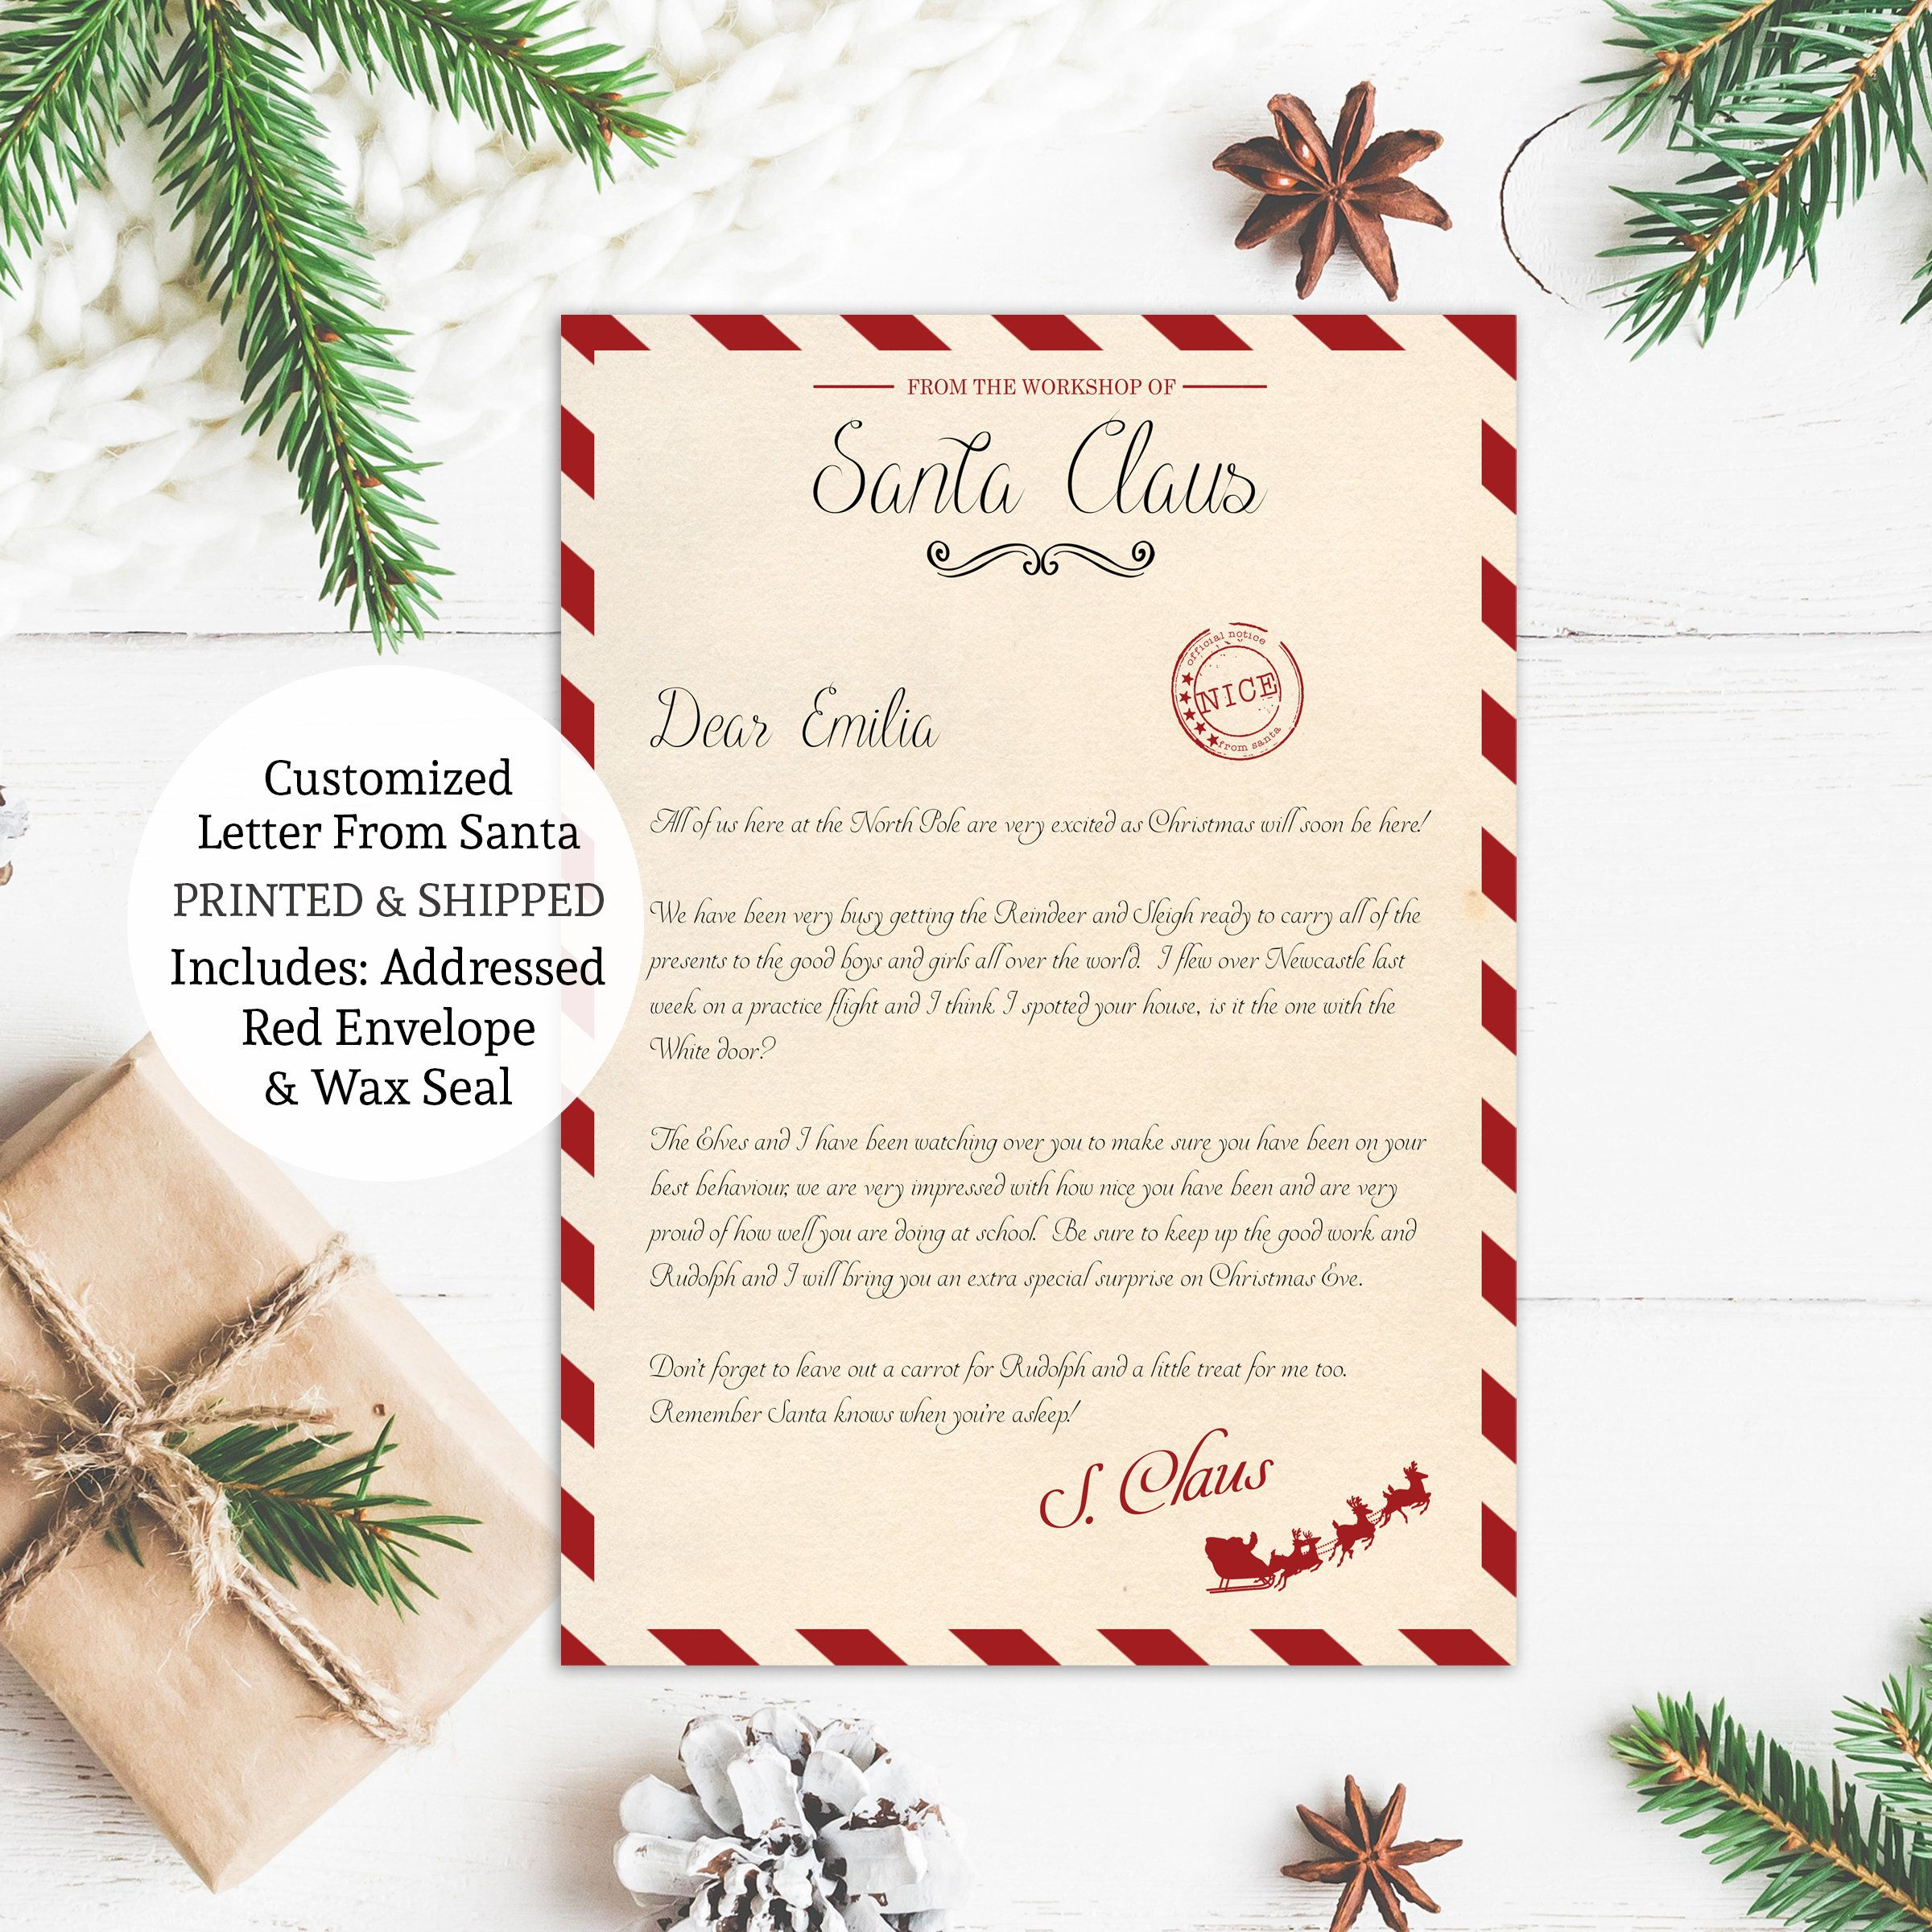 Personalized Letter From Santa Claus Christmas Santa Letter Etsy Personalized Letters From Santa Santa Letter Personalized Letters